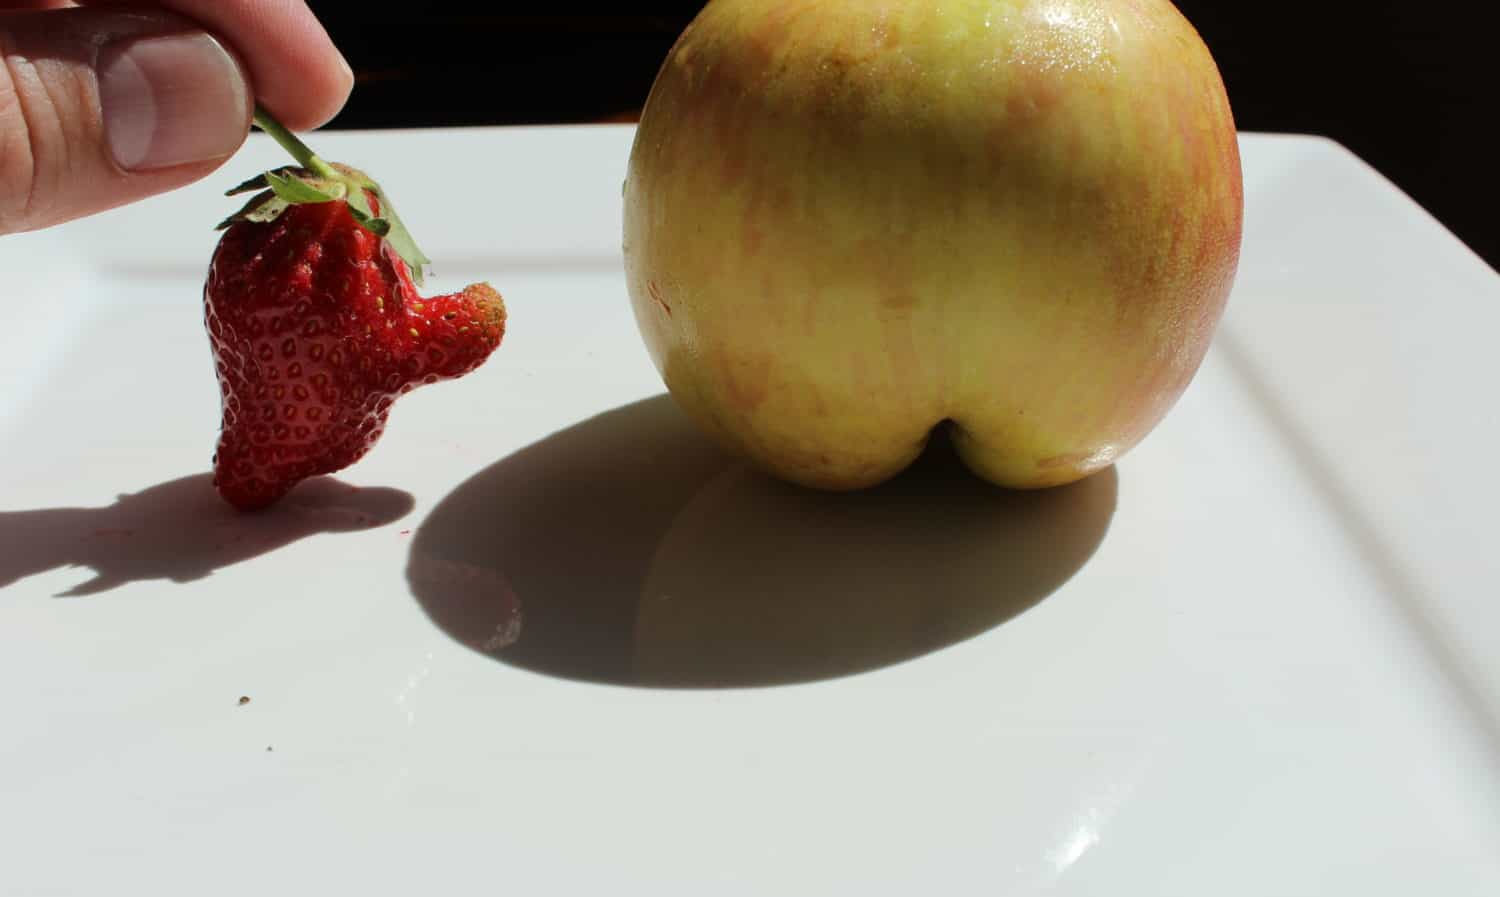 Kids love ugly fruit, they know that wasting good food, based on the way it looks, is just wrong!